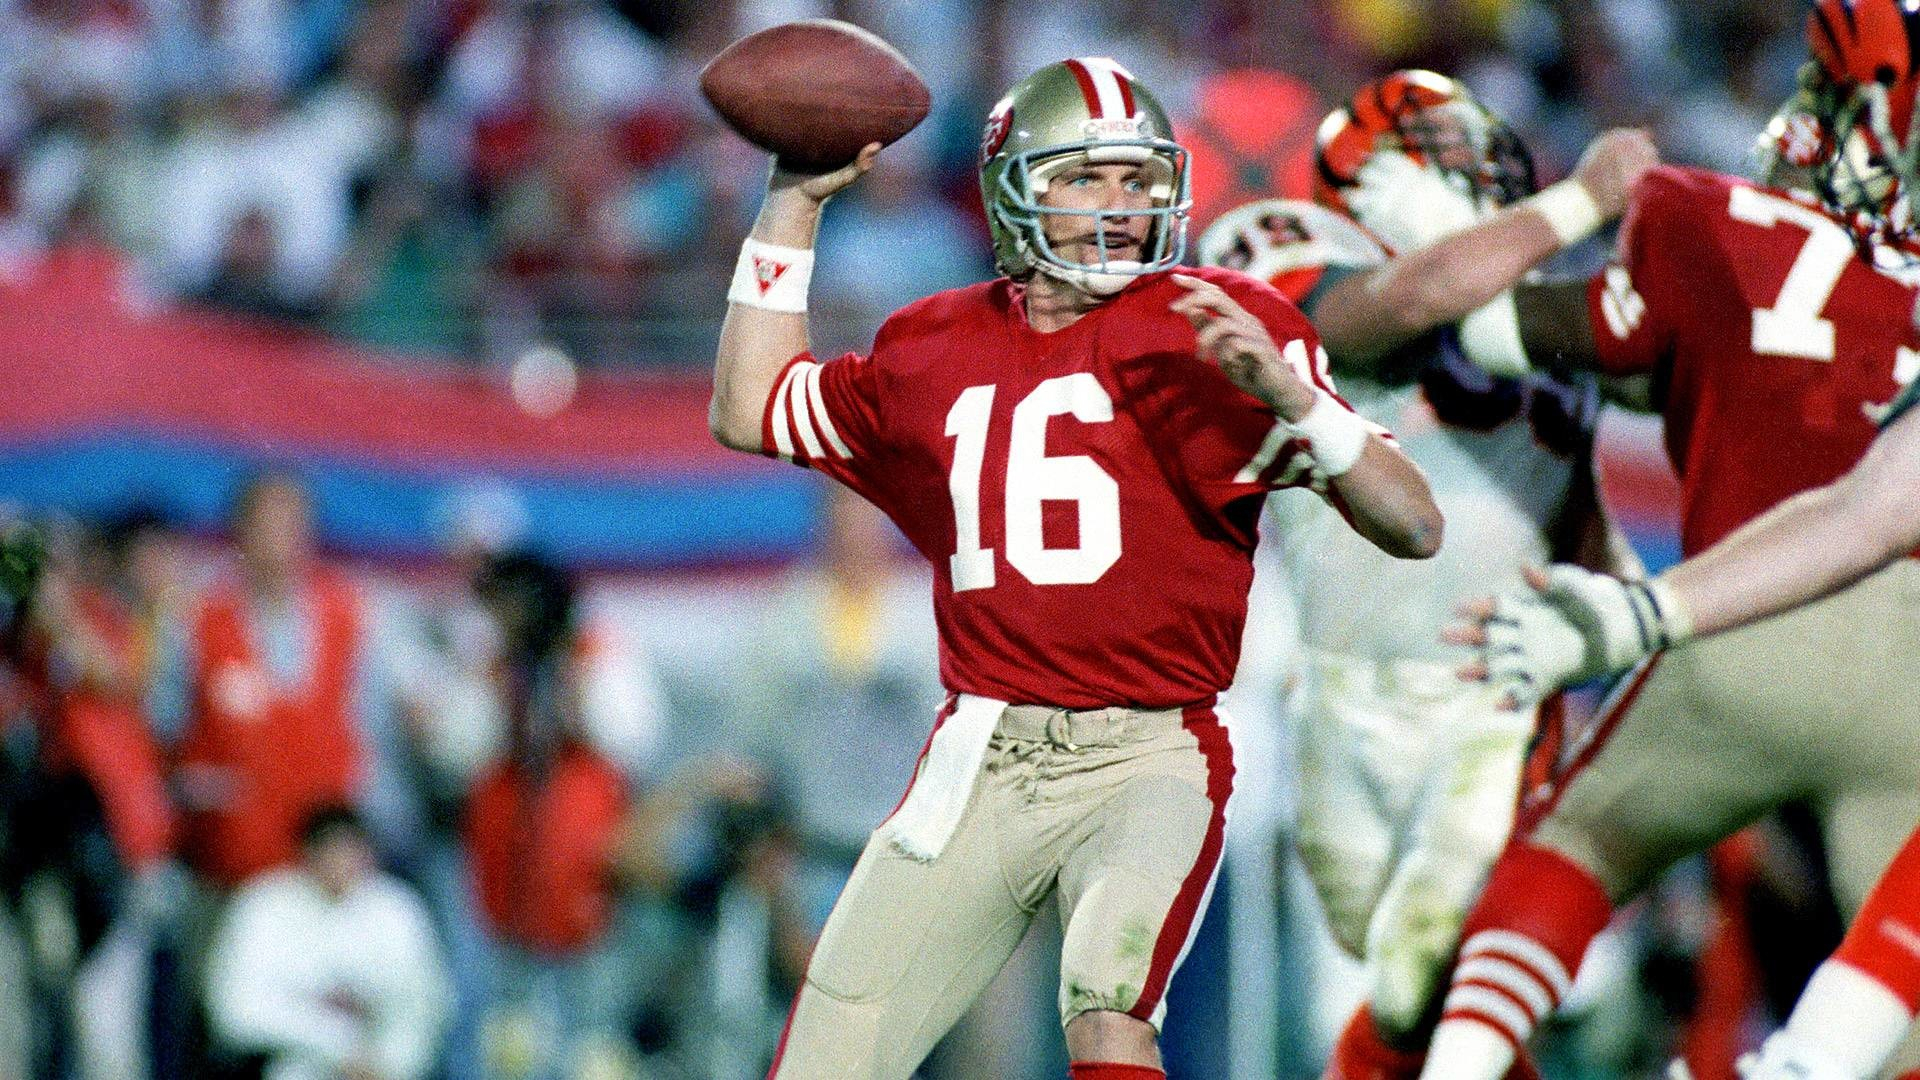 70+ joe montana wallpapers on wallpaperplay